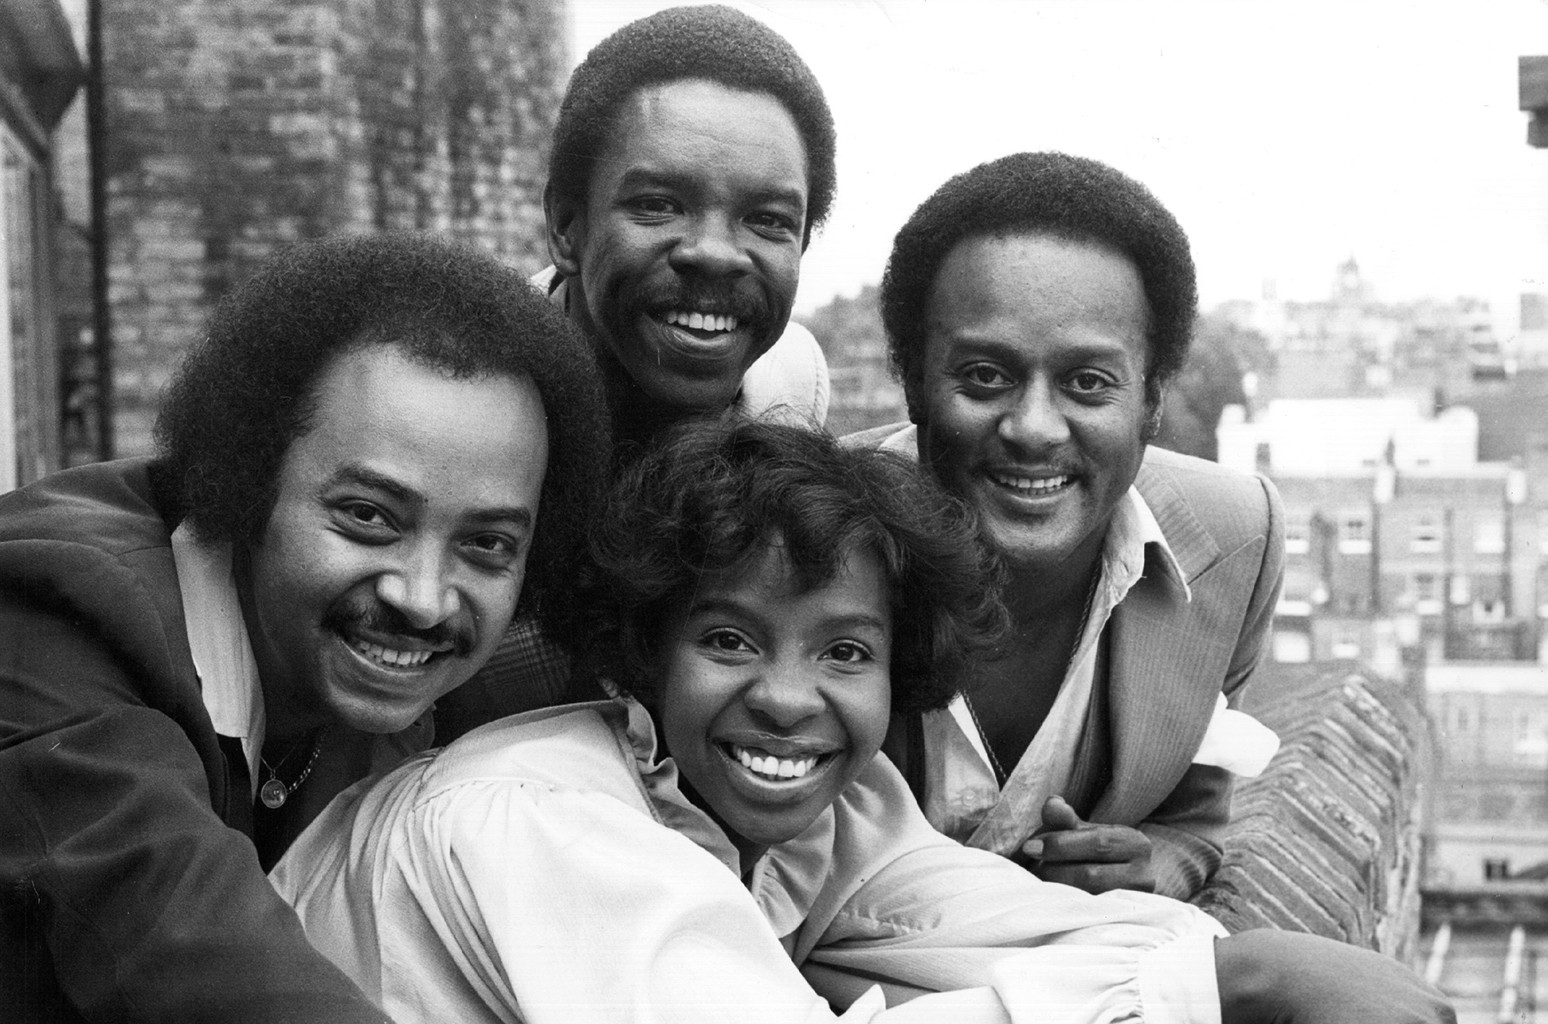 Gladys Knight and the Pips photographed on Aug. 31, 1978.